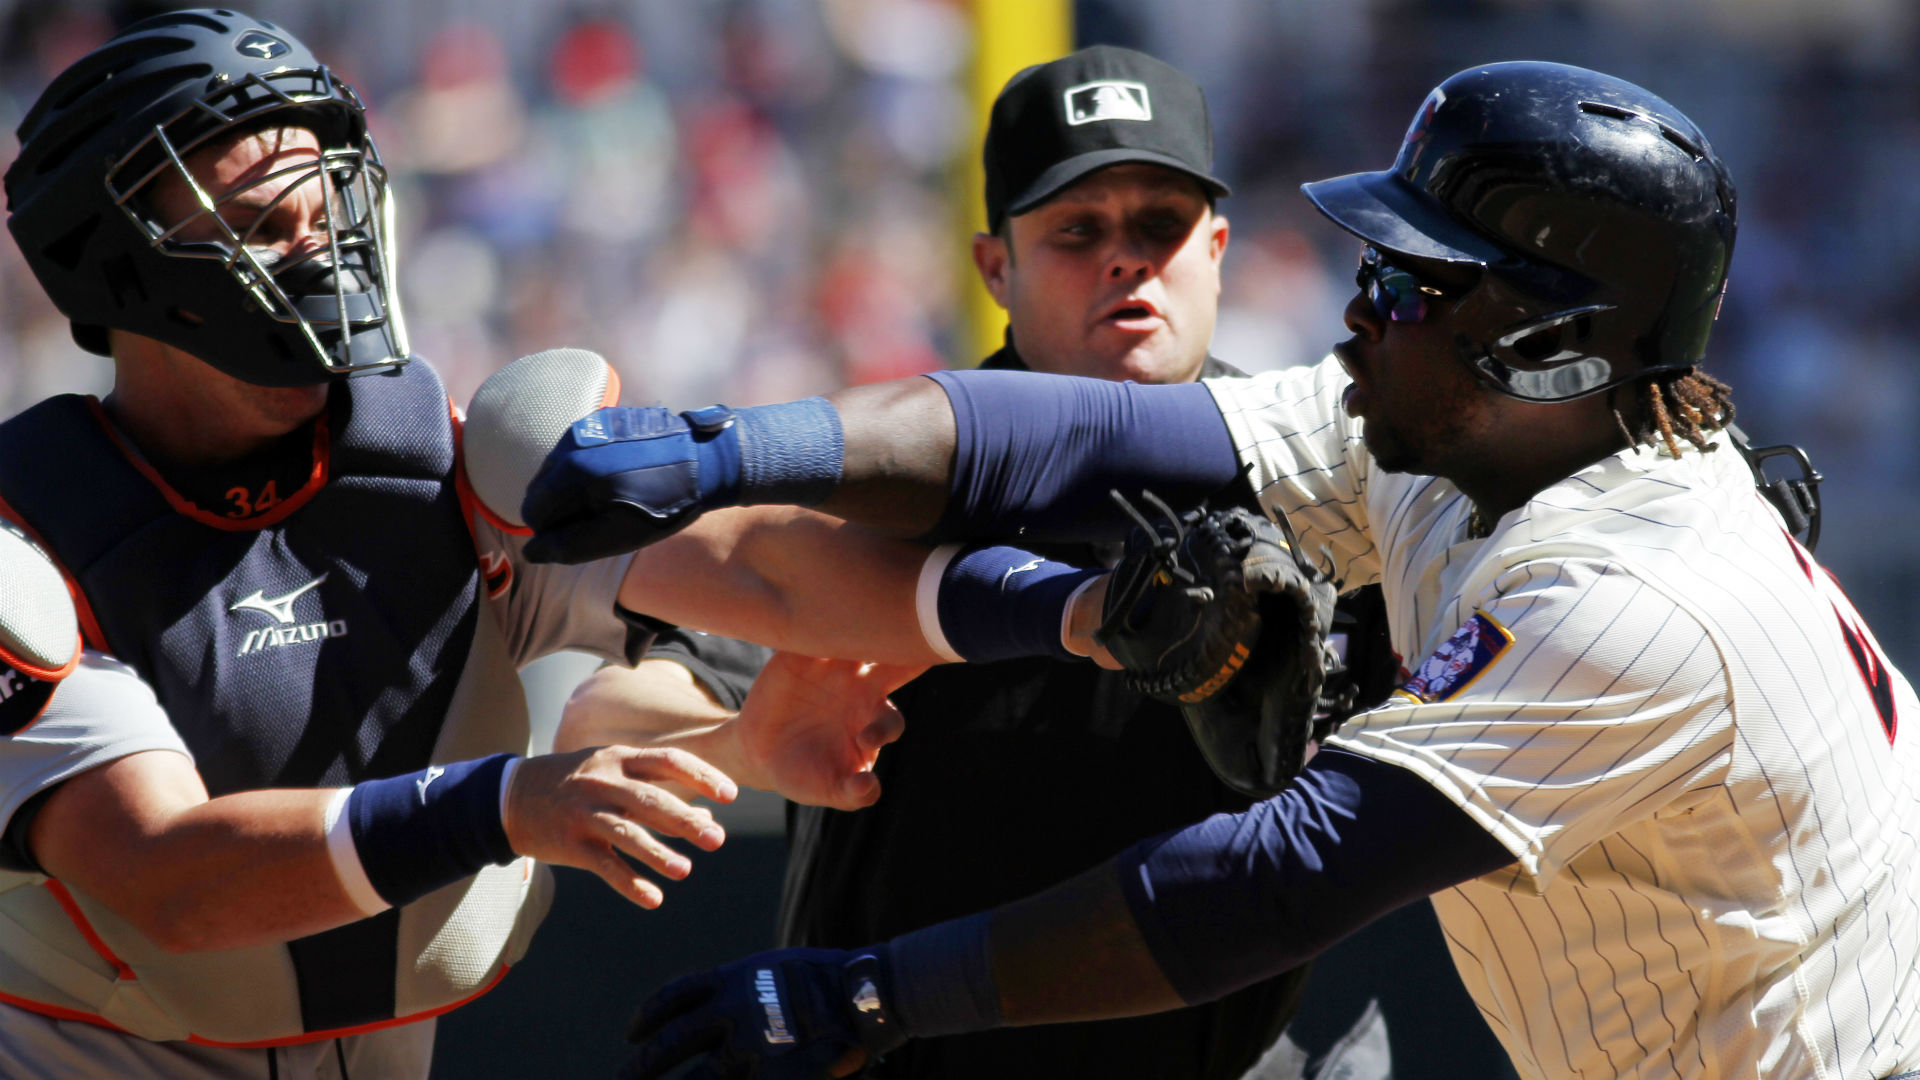 Tigers OF Jones says he's feeling OK after being hit in face